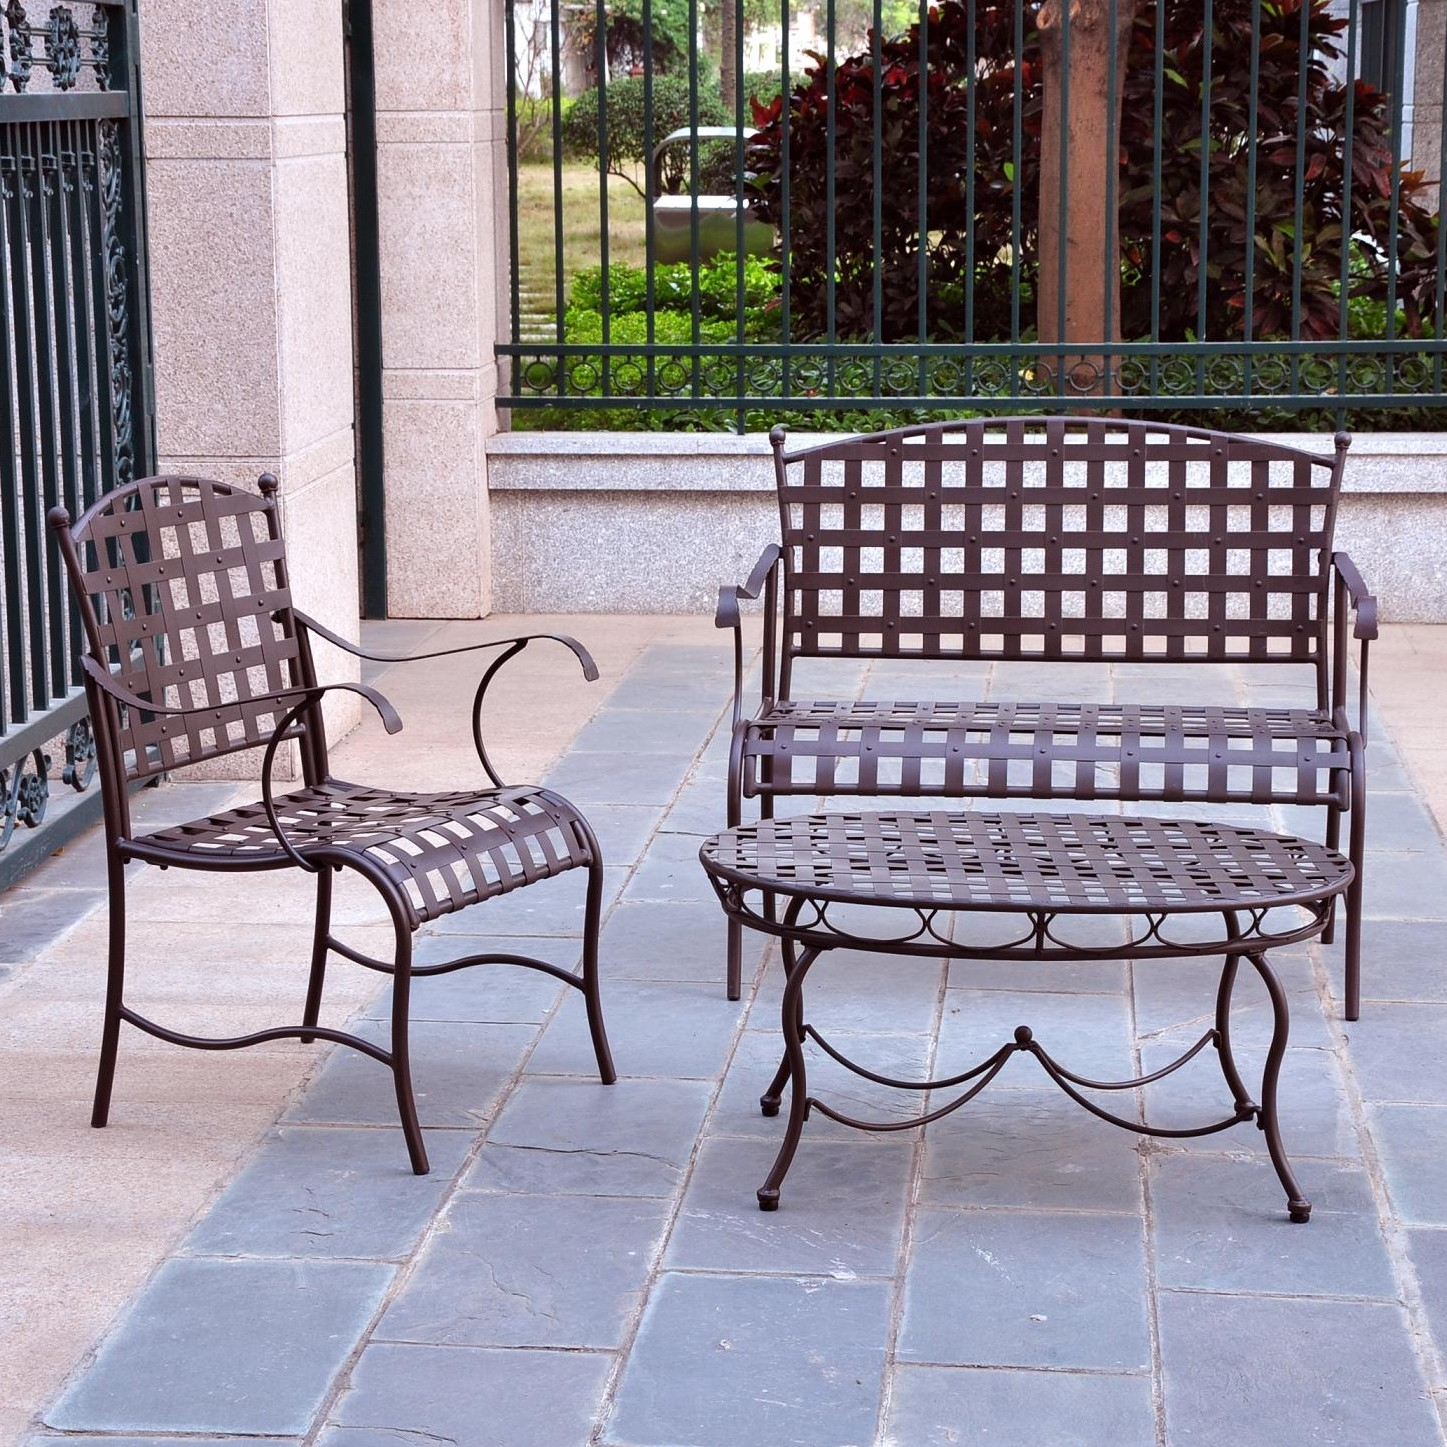 3 piece wrought iron patio furniture lounge seating group set fastfurnishings com